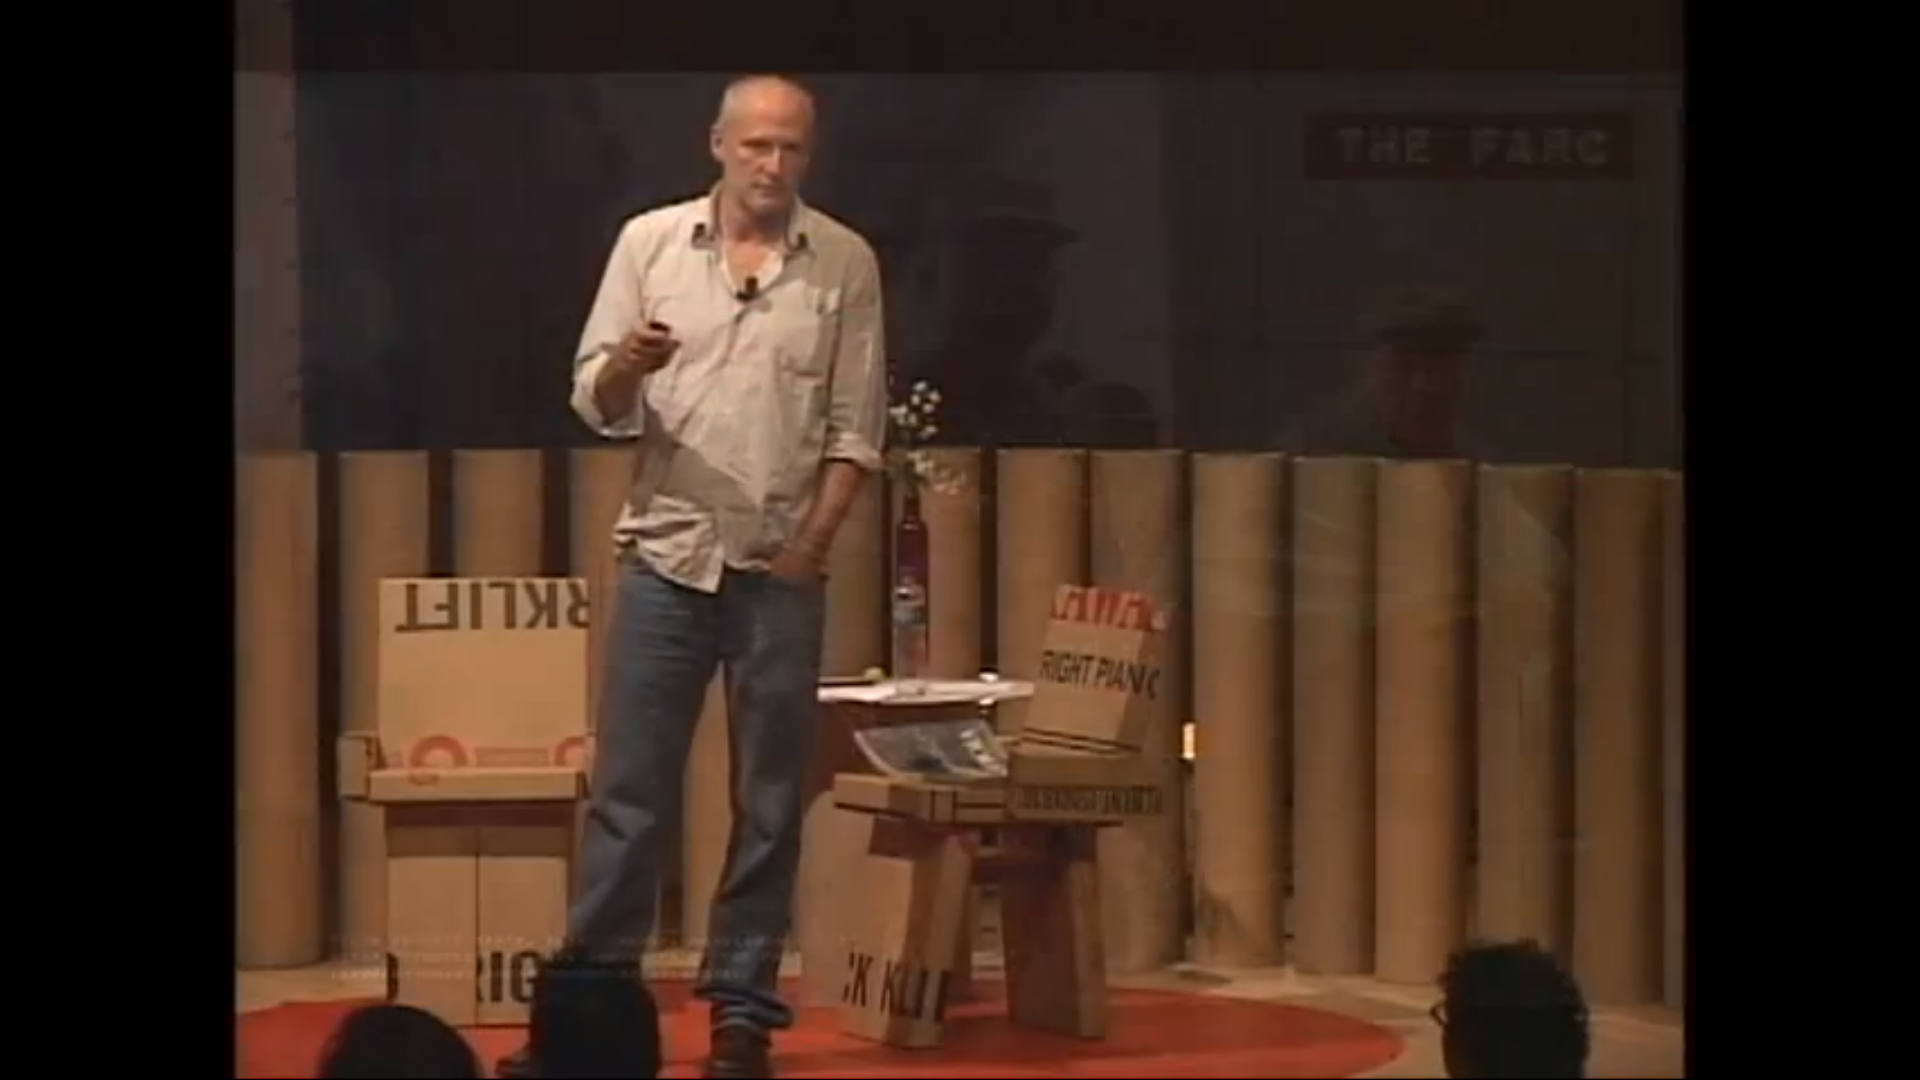 Stephen Ferry at TEDxCeiba